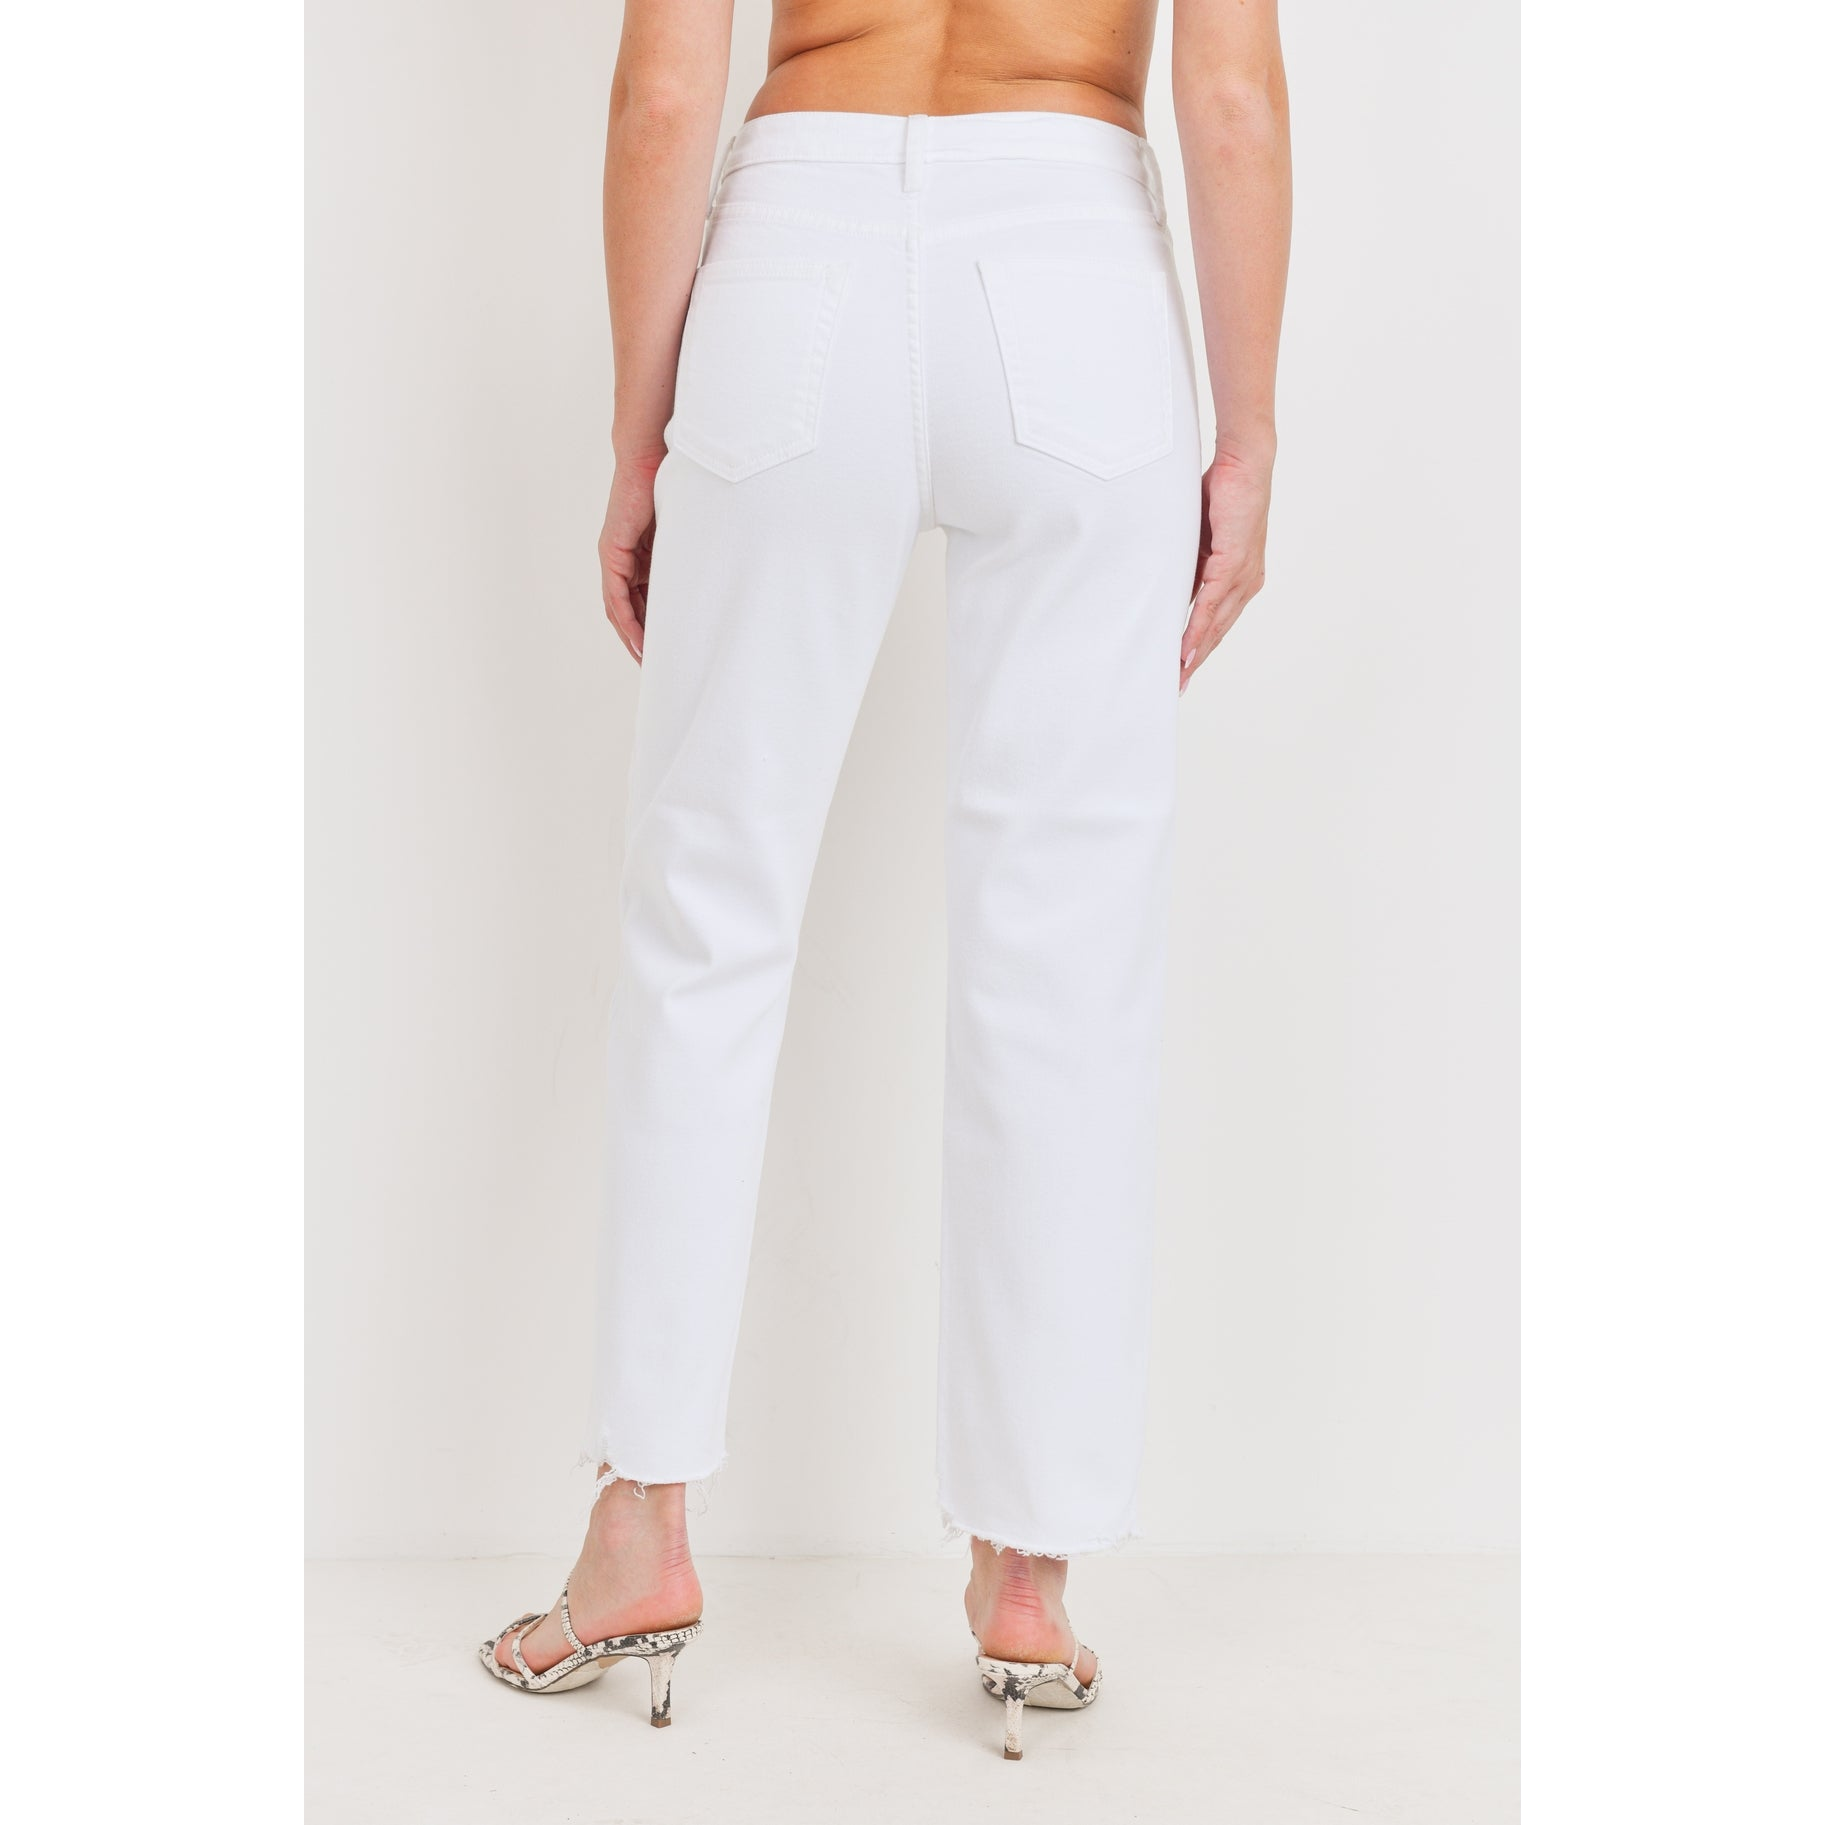 The Hera White High Rise Straight Jeans by Just Black Denim